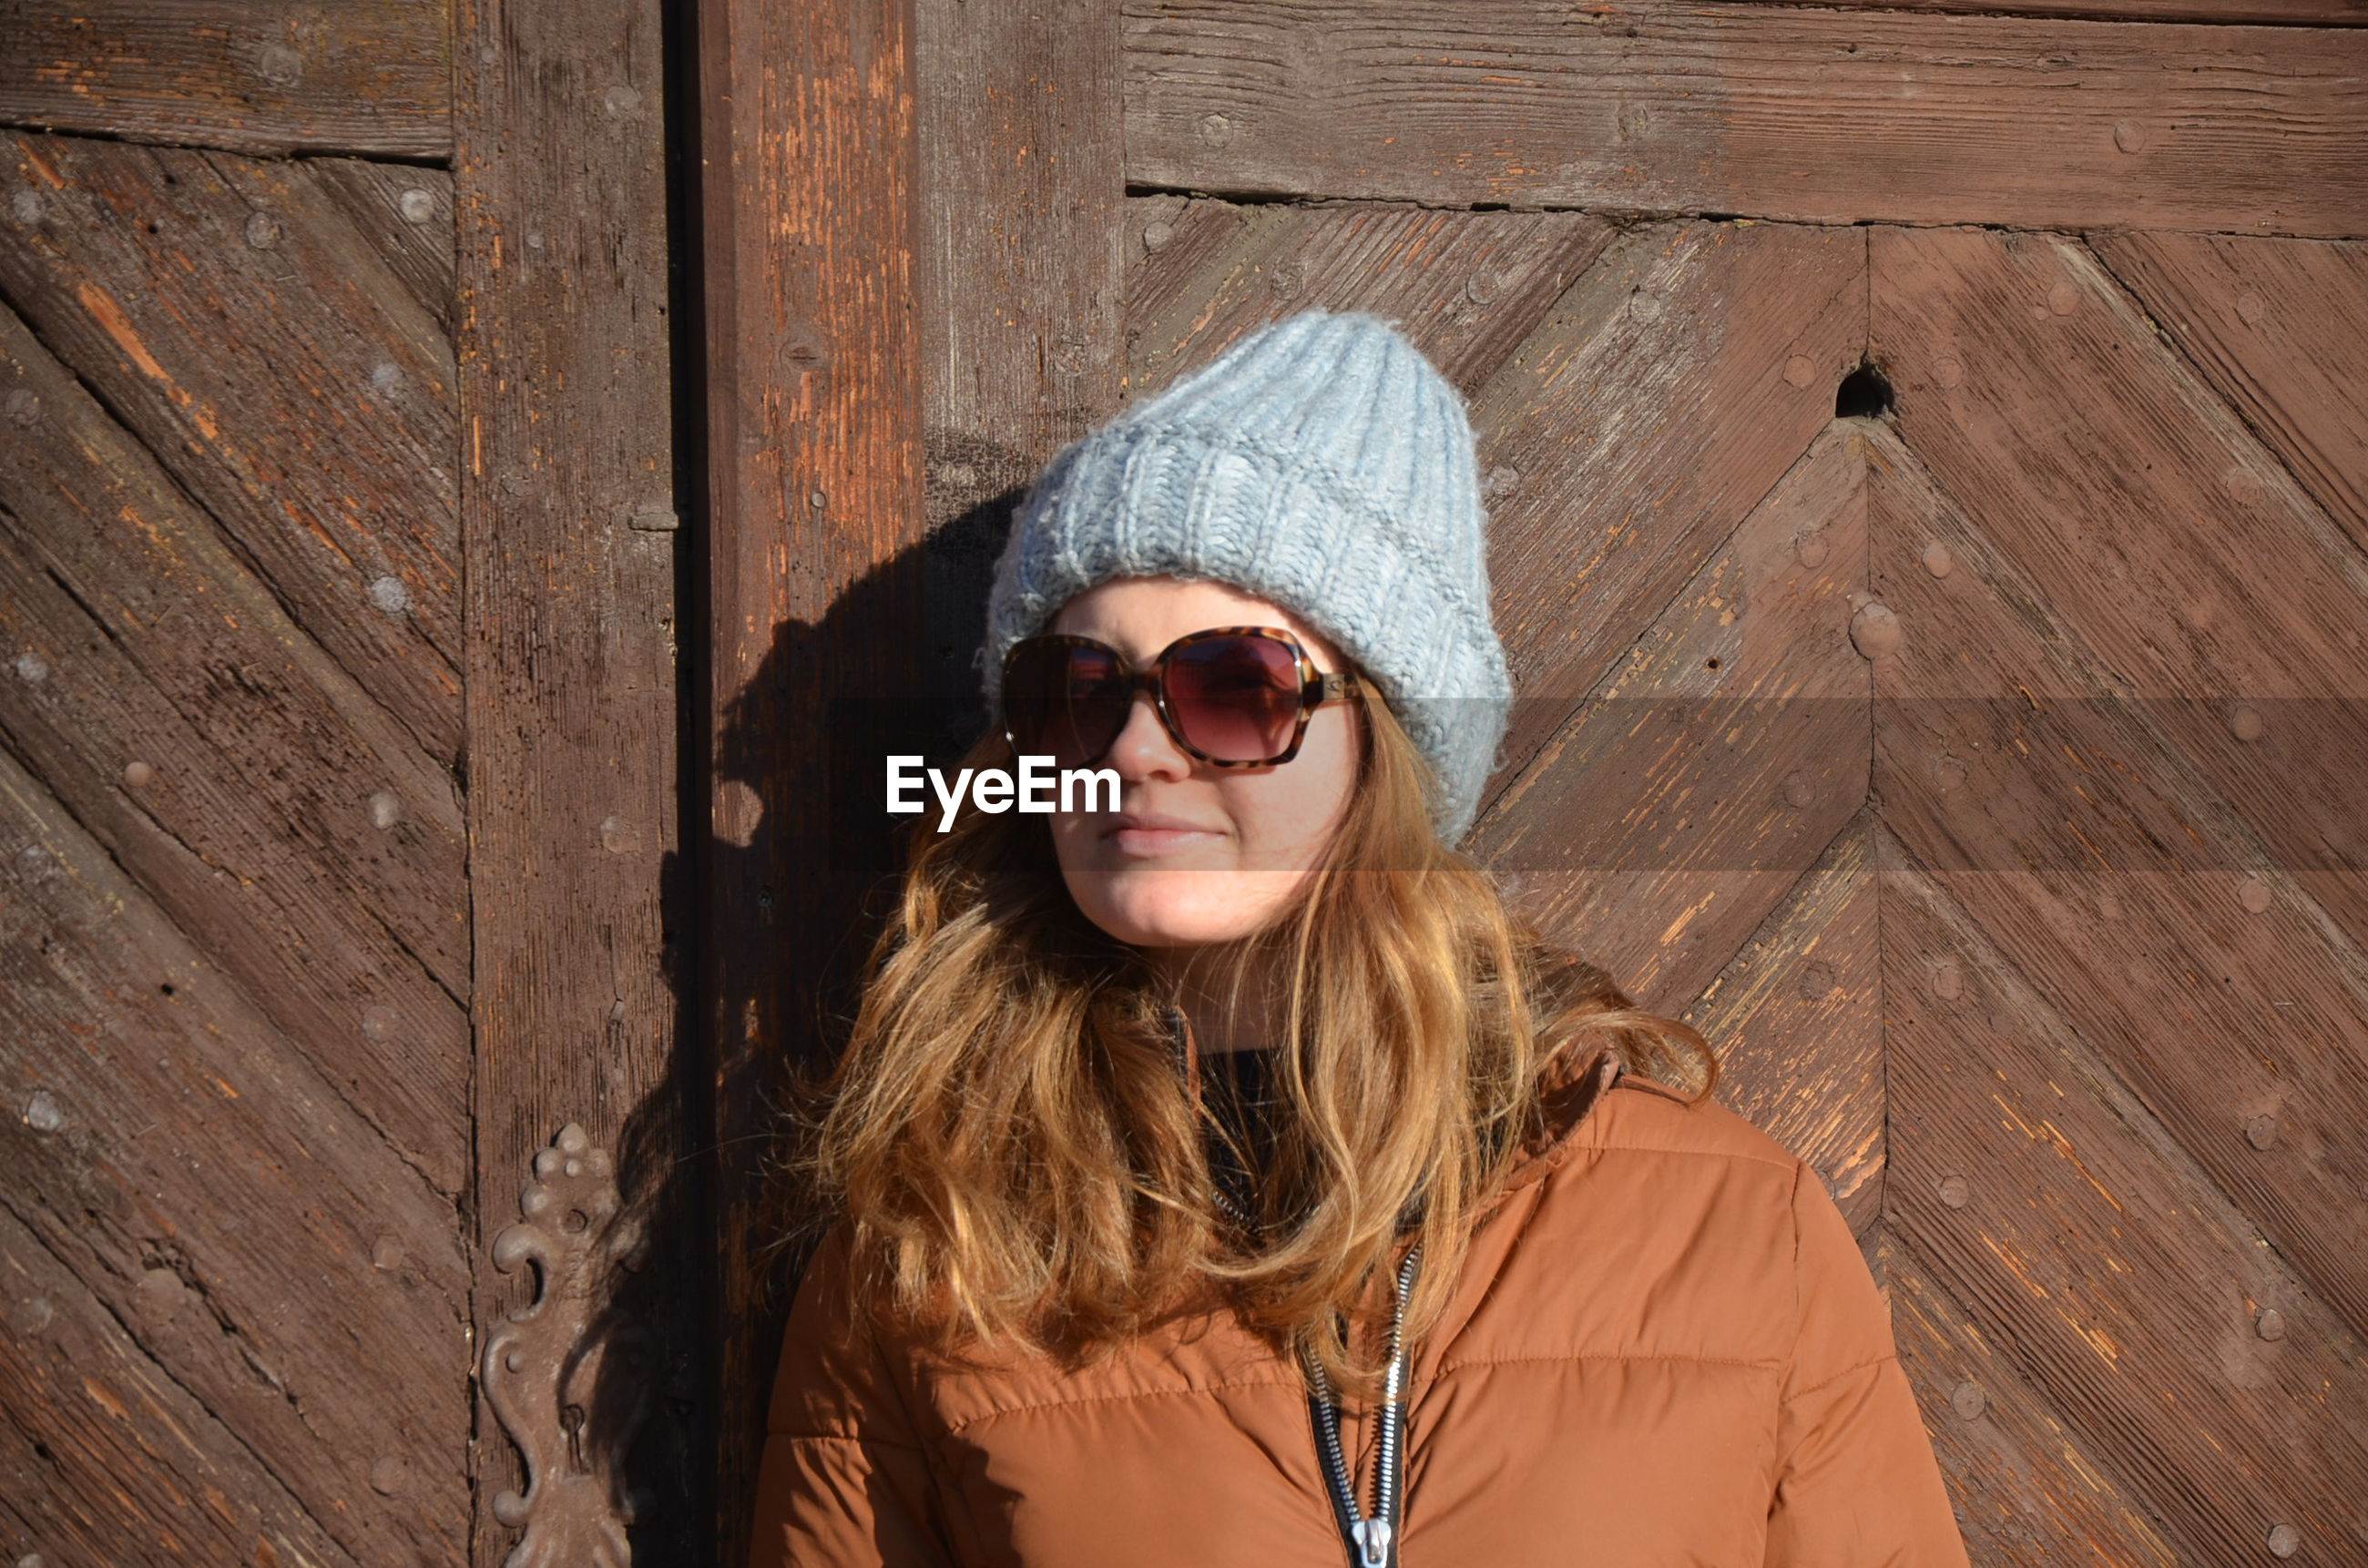 Woman wearing sunglasses while standing against wooden door